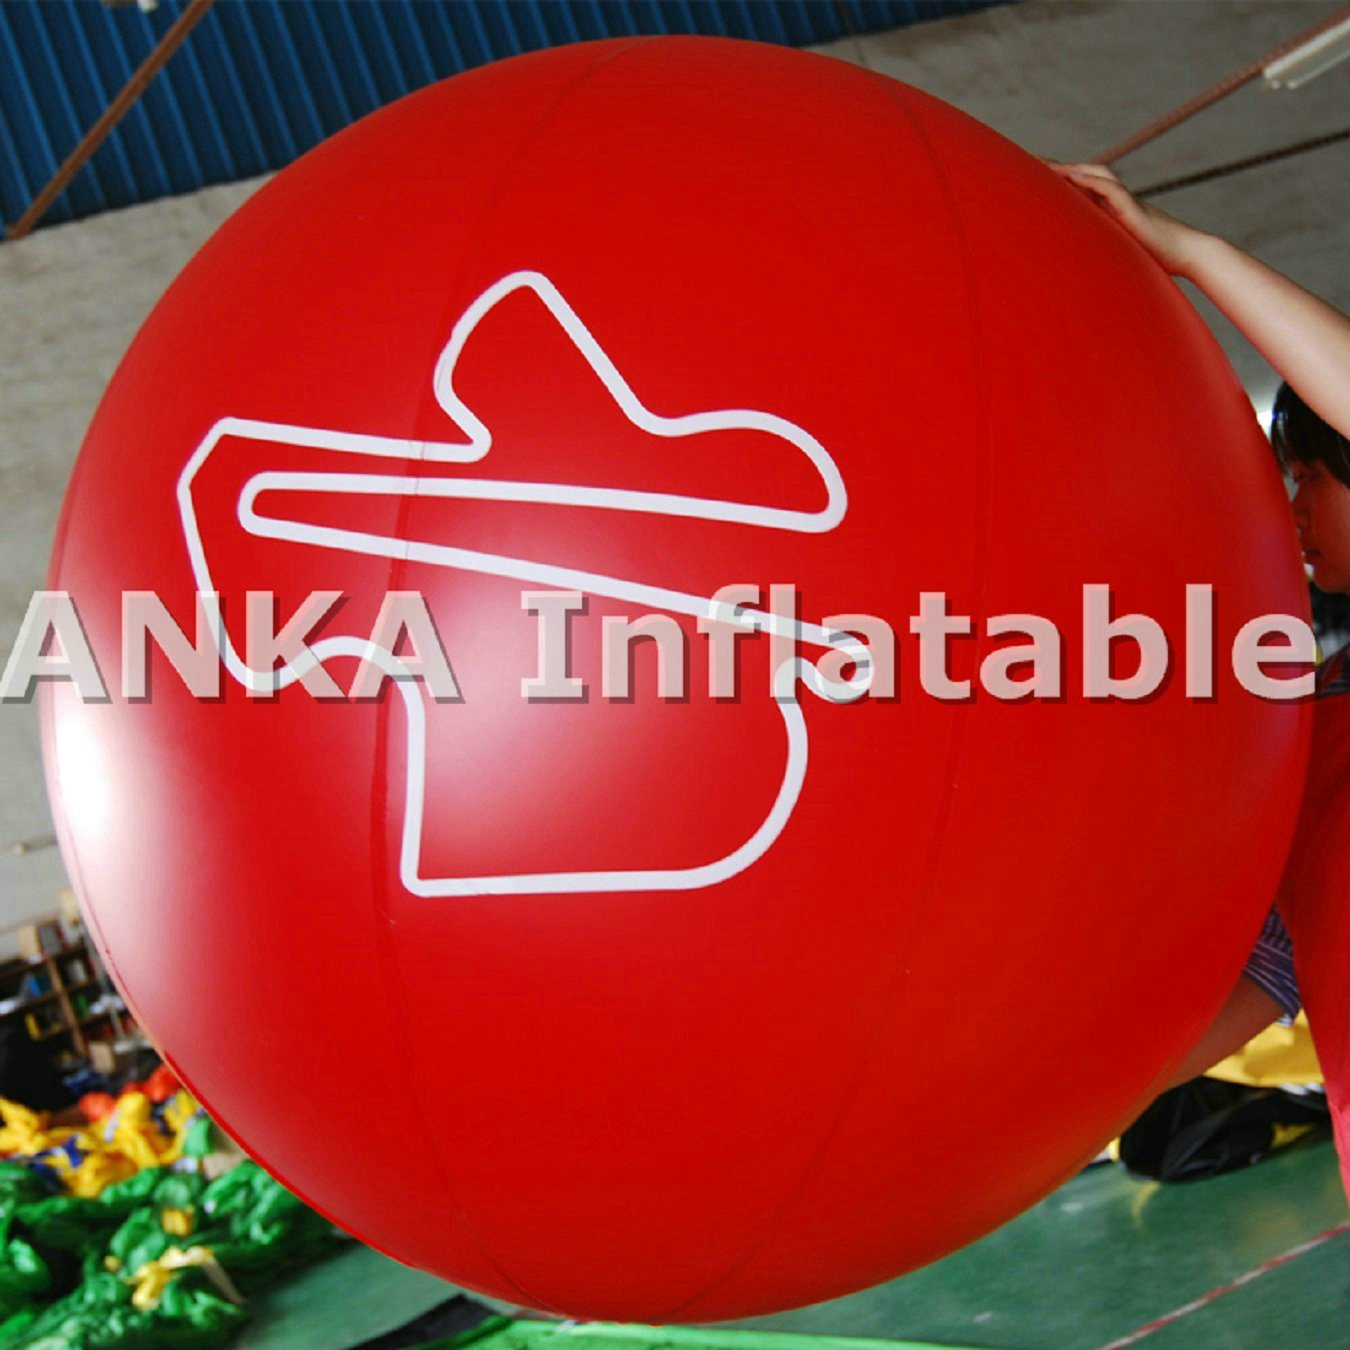 Inflatable Blimp Toy Airship for Advertising and Promotion